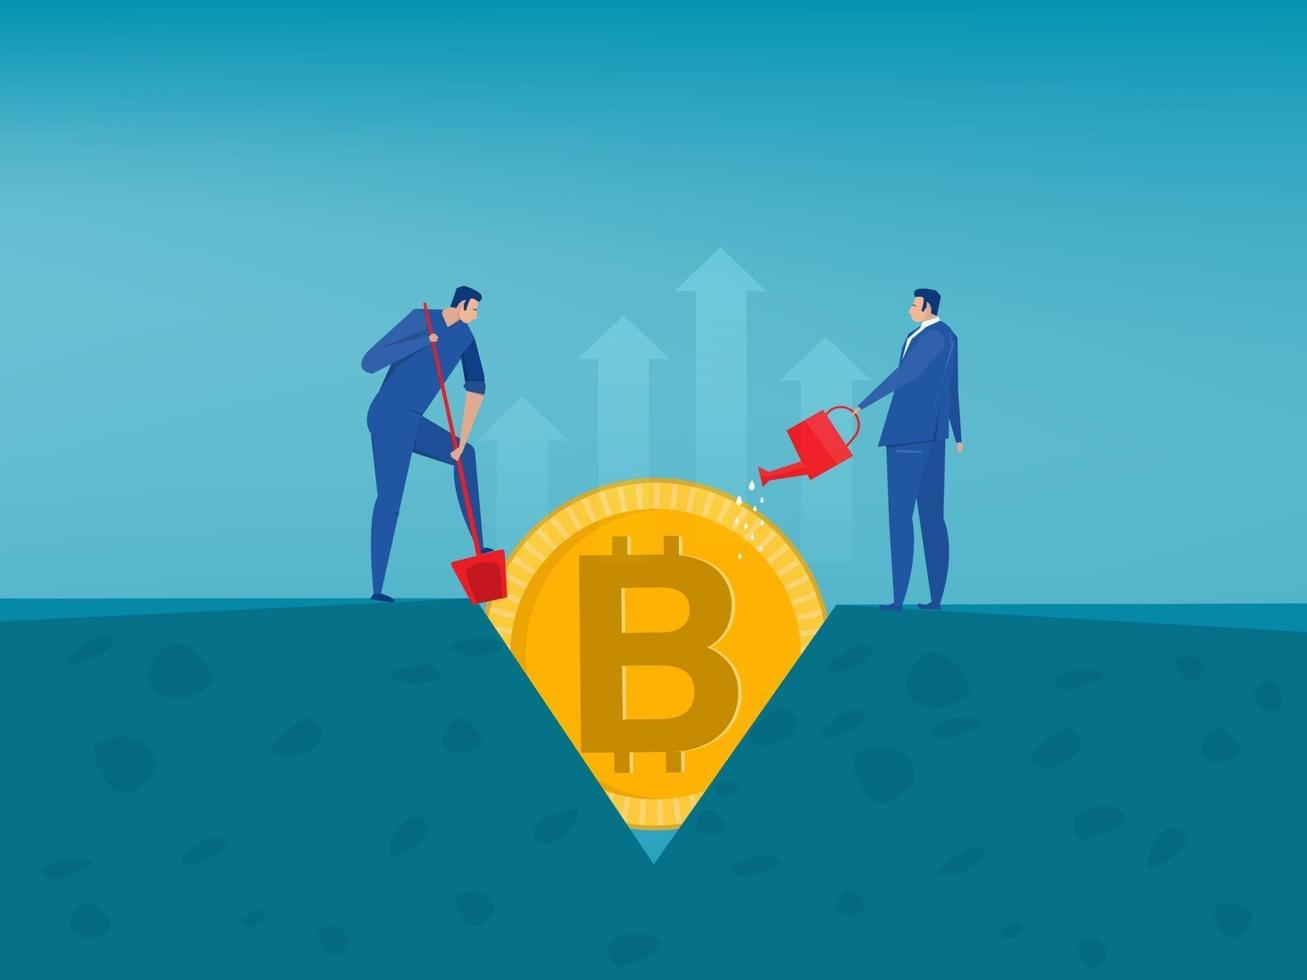 Man watering Bitcoin and making it grow. Crypto-currency, bitcoin concept Vector illustration in flat style.